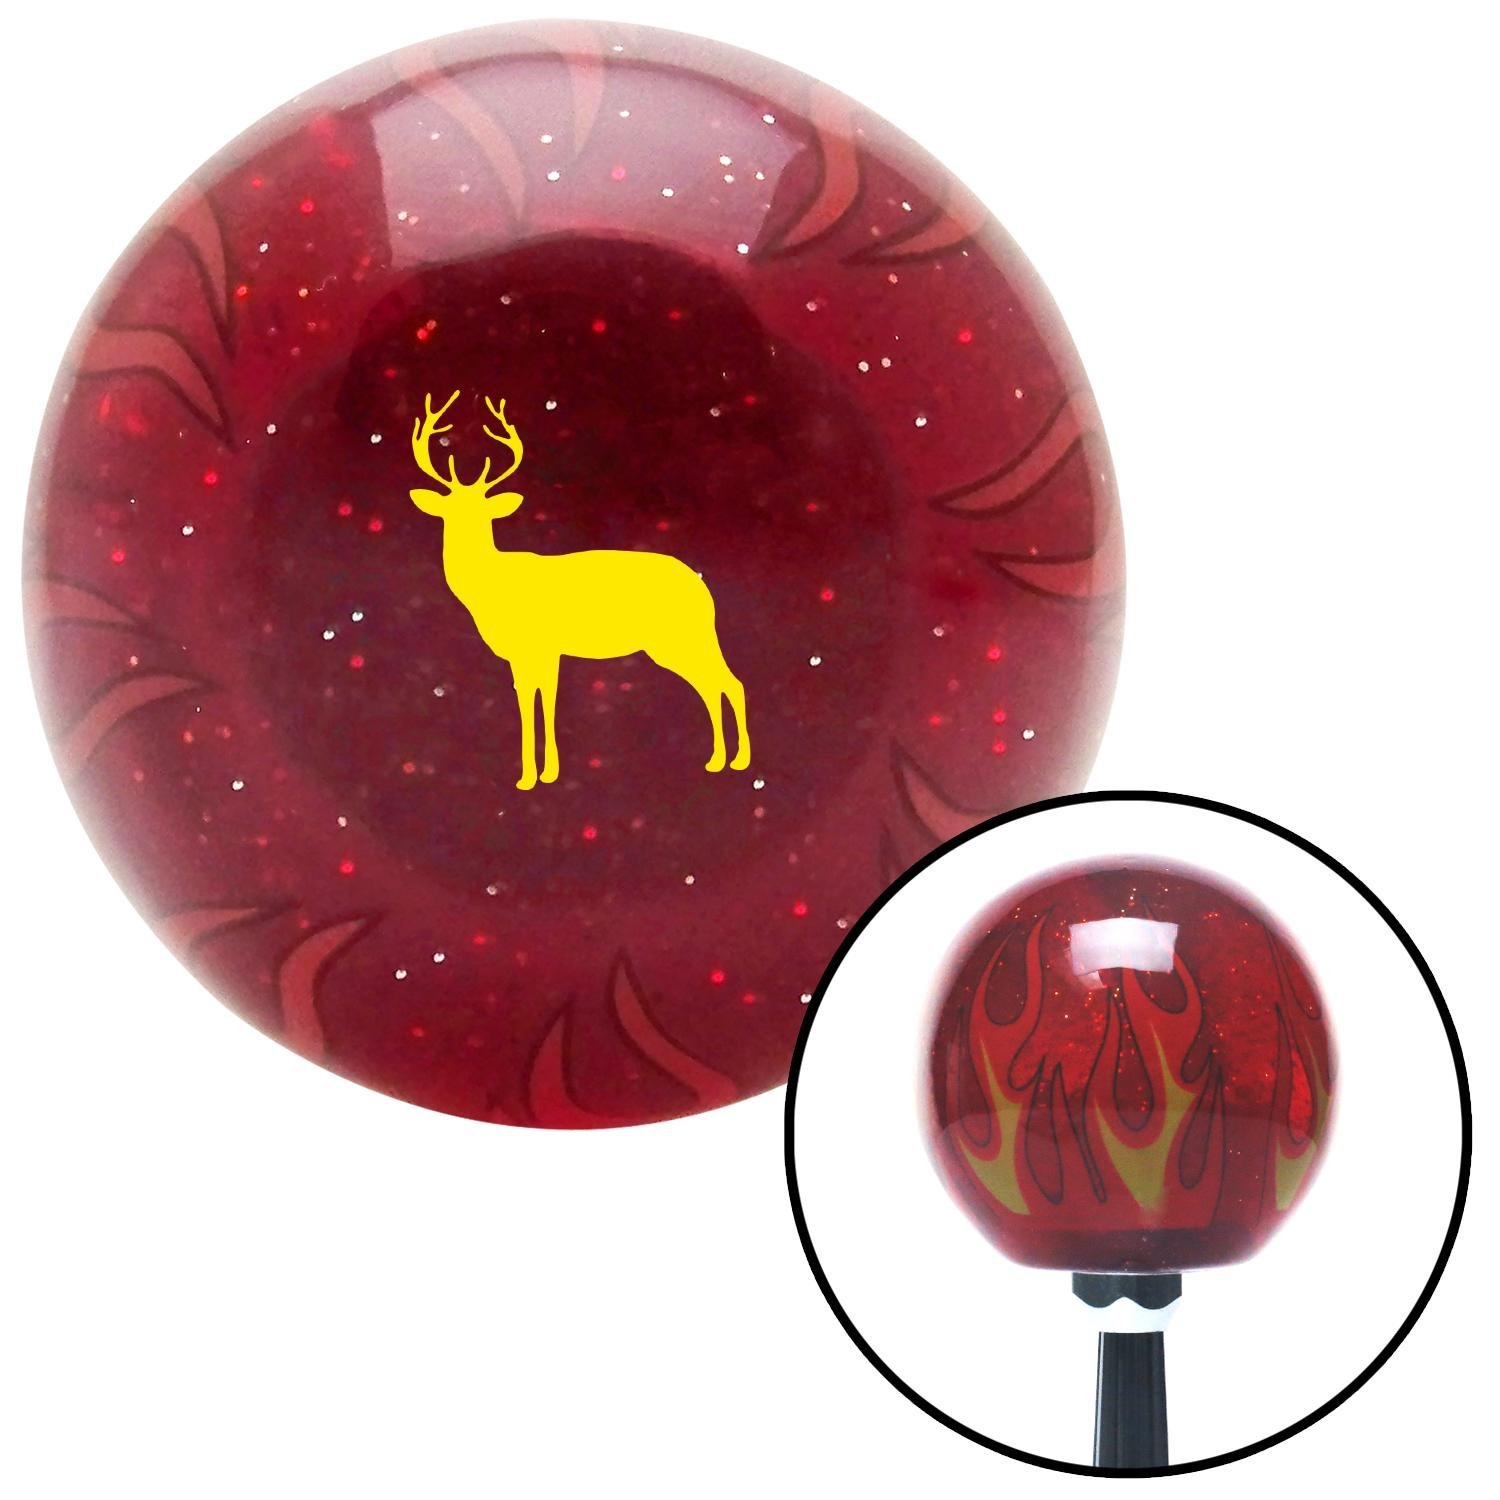 American Shifter 296473 Shift Knob Yellow Deer Silhouette Red Flame Metal Flake with M16 x 1.5 Insert